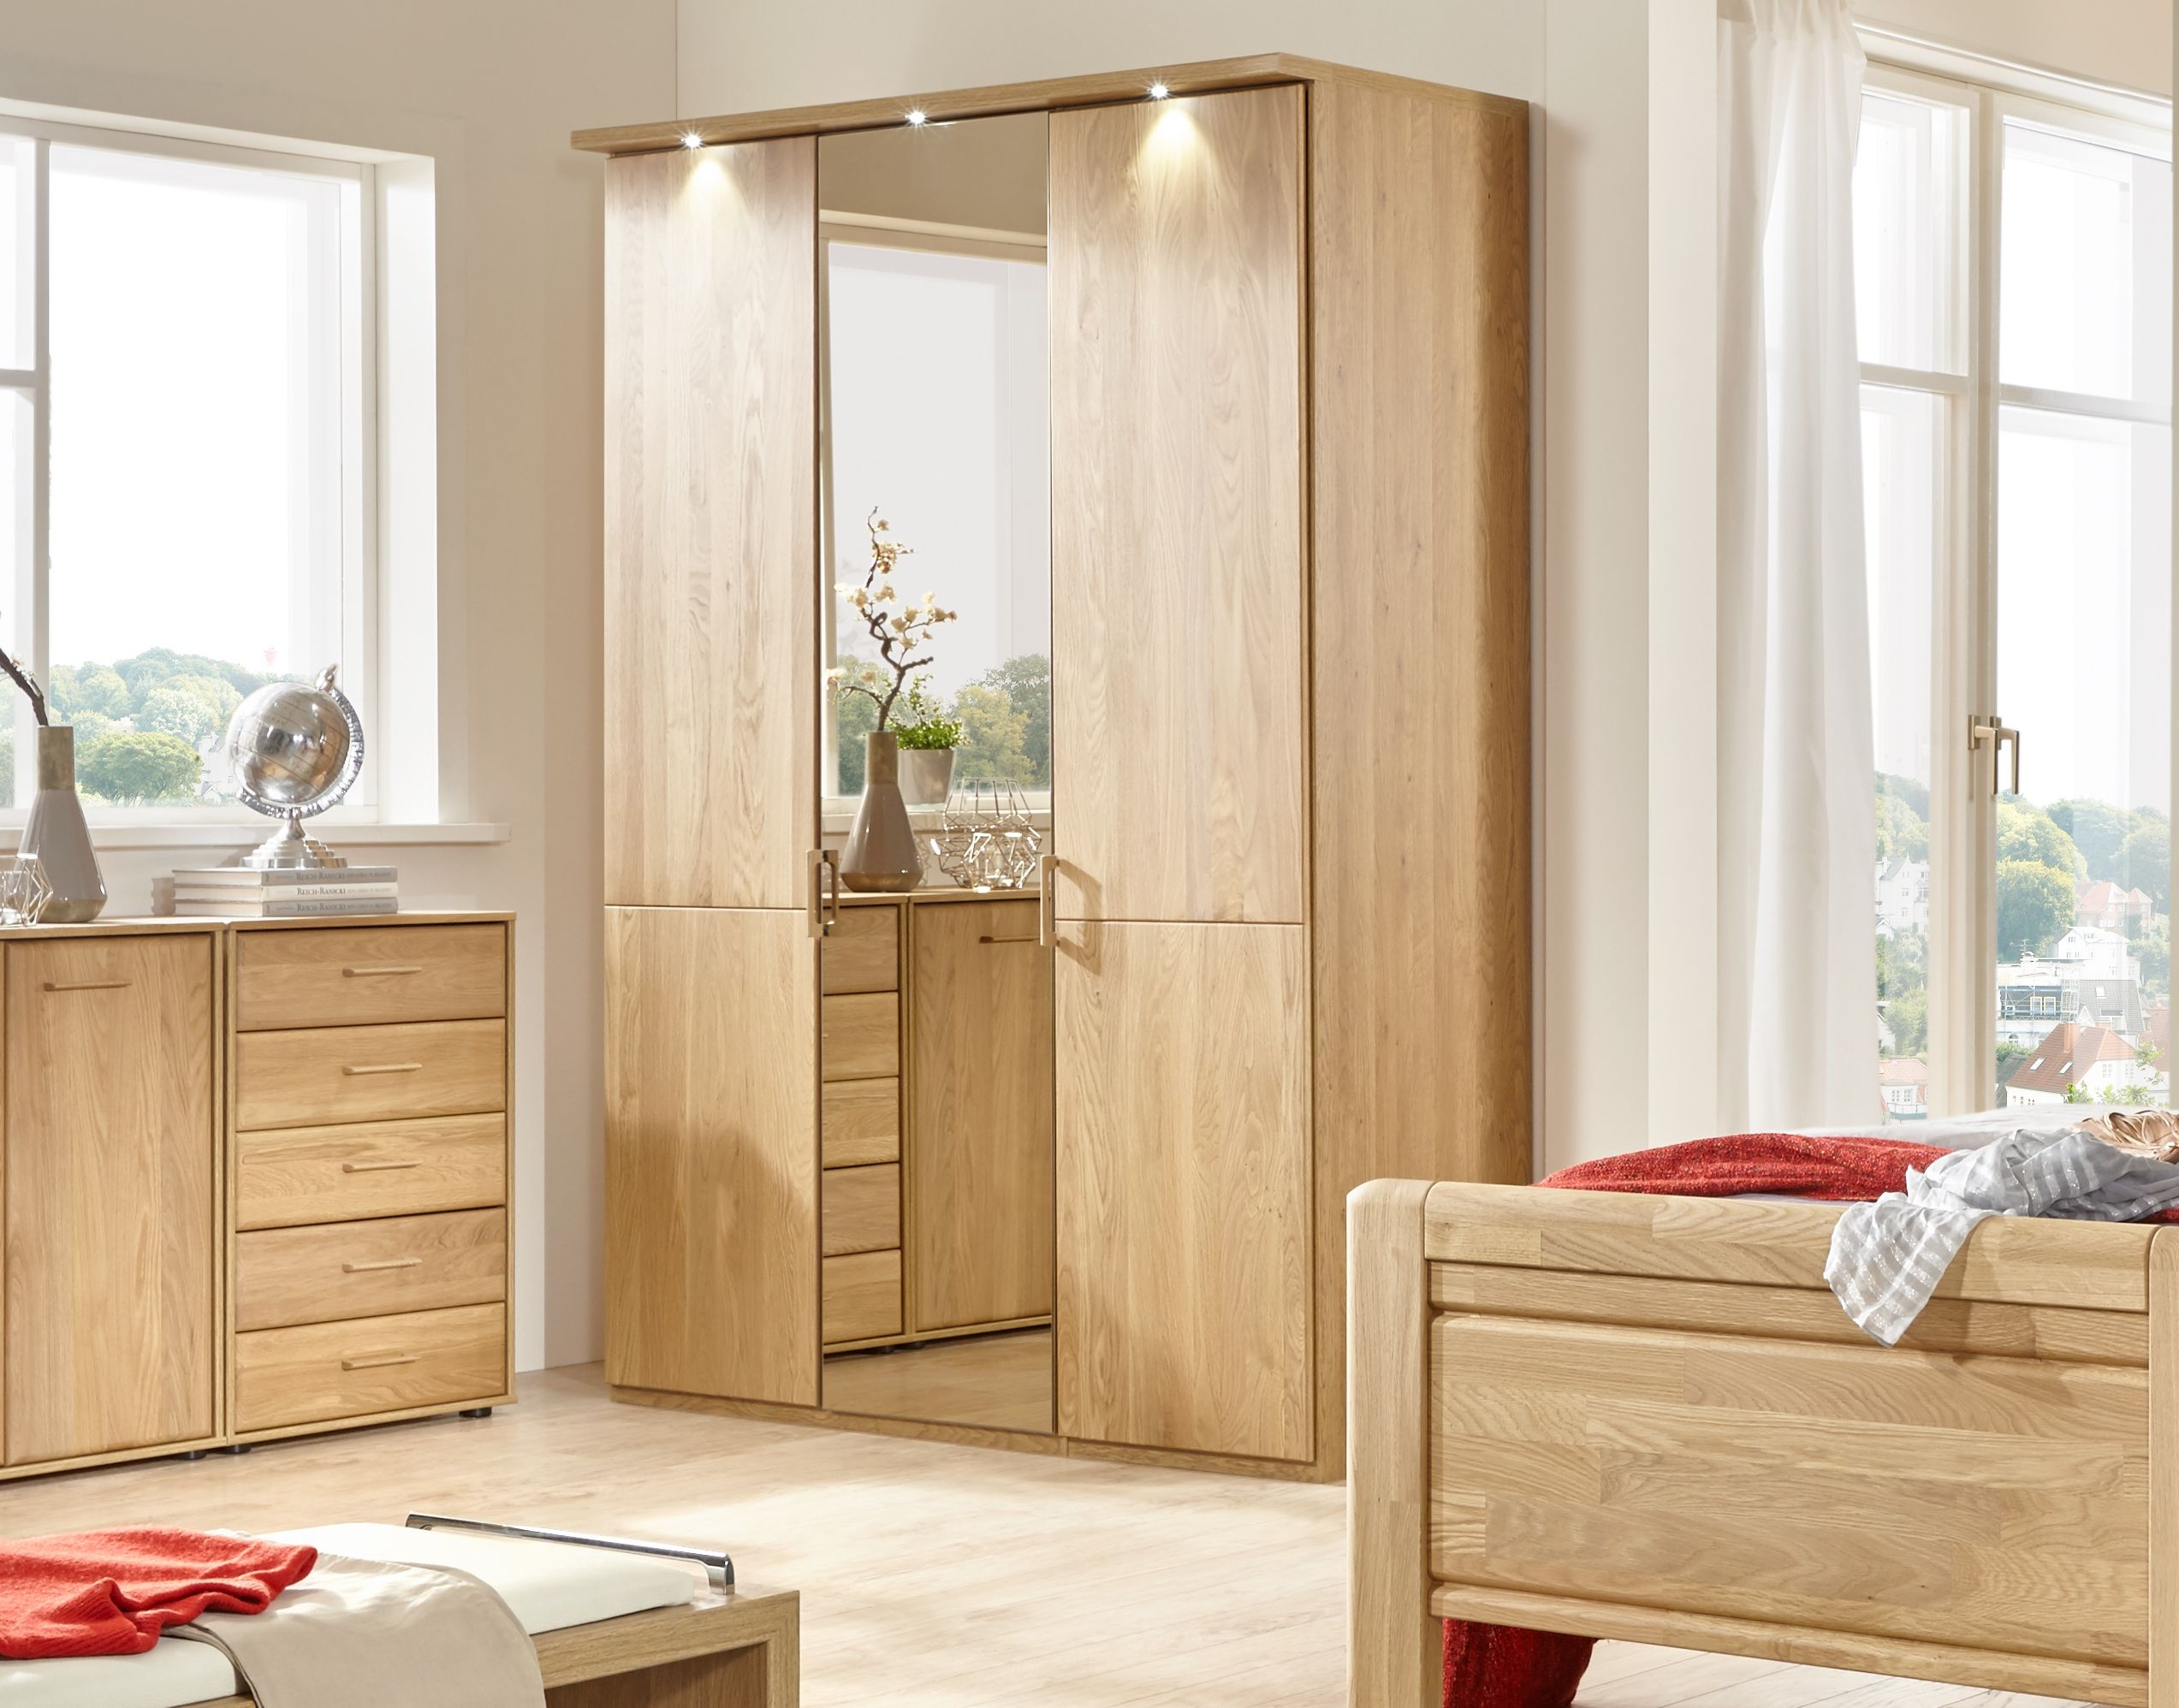 Wiemann Lido 2 Door 1 Mirror Wardrobe in Oak - W 100cm